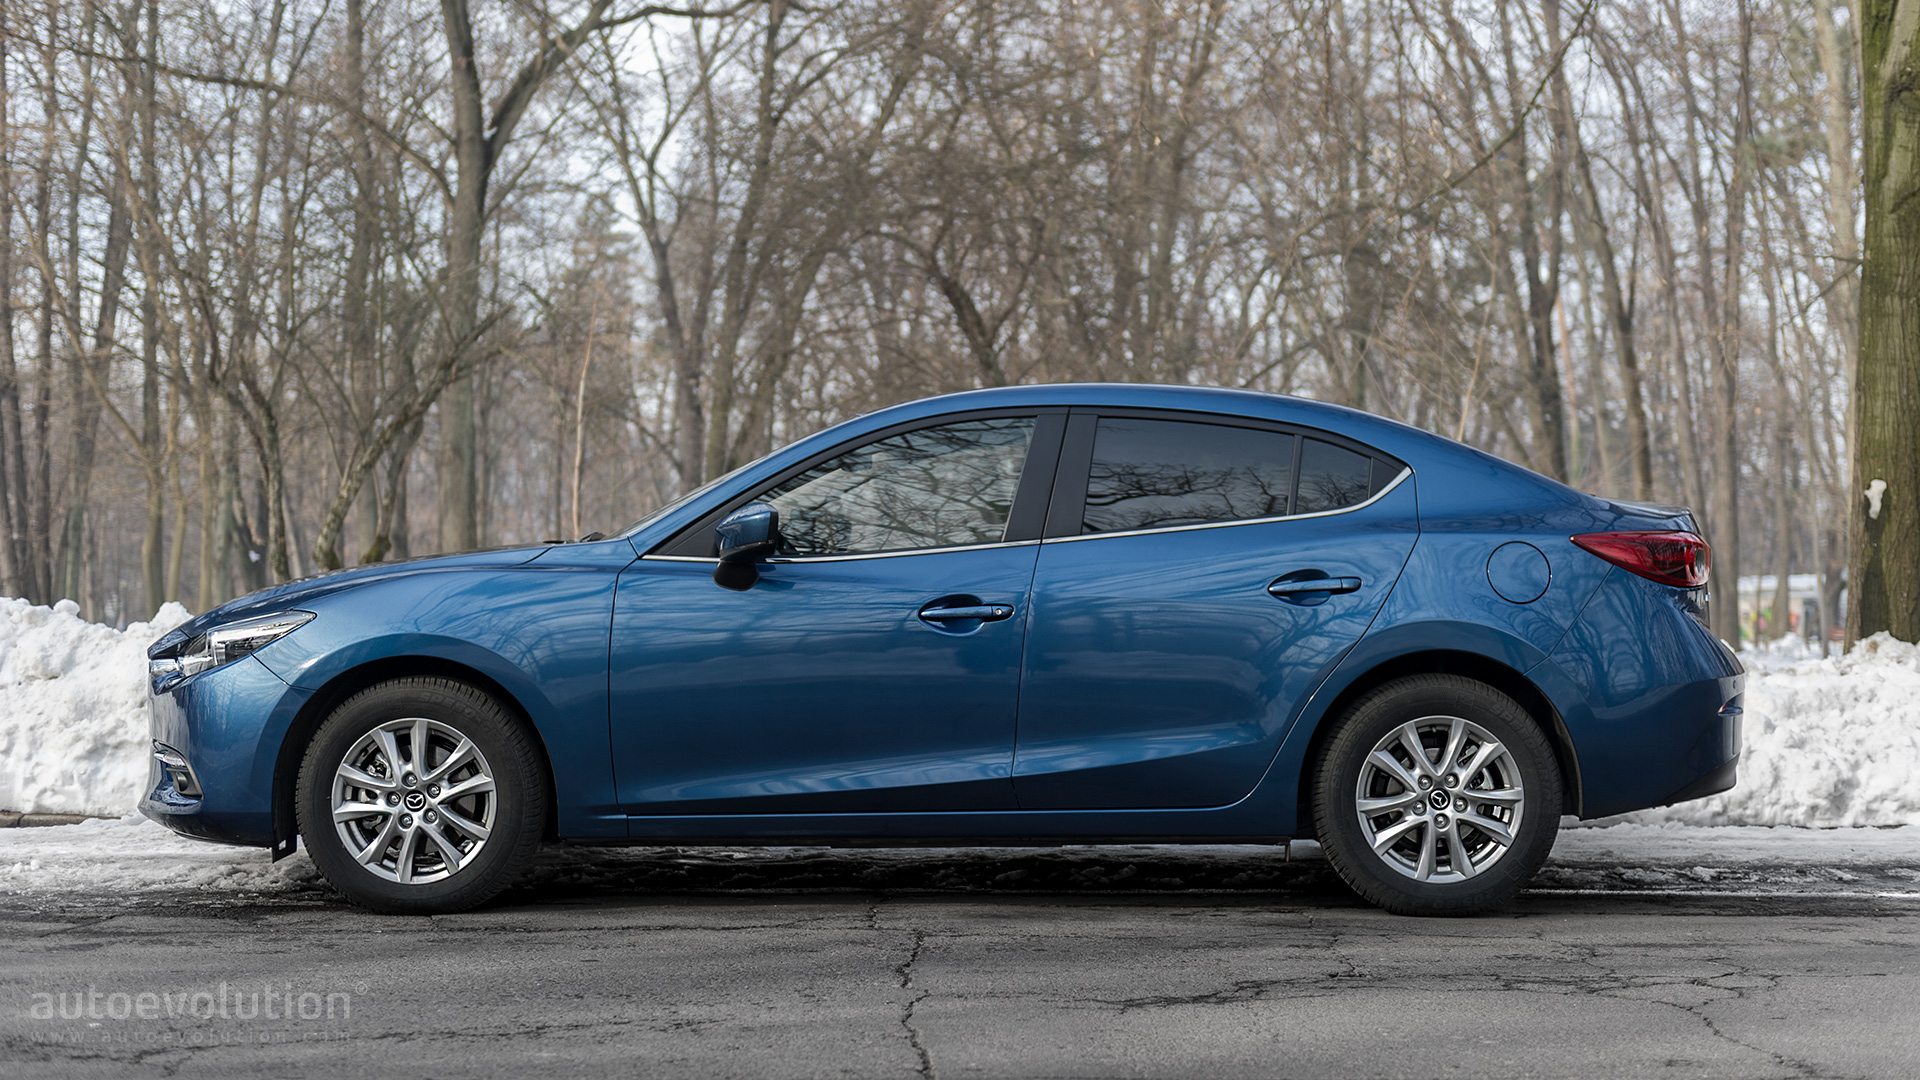 https://s1.cdn.autoevolution.com/images/news/driven-2017-mazda3-sedan-20-g120-117930_1.jpg